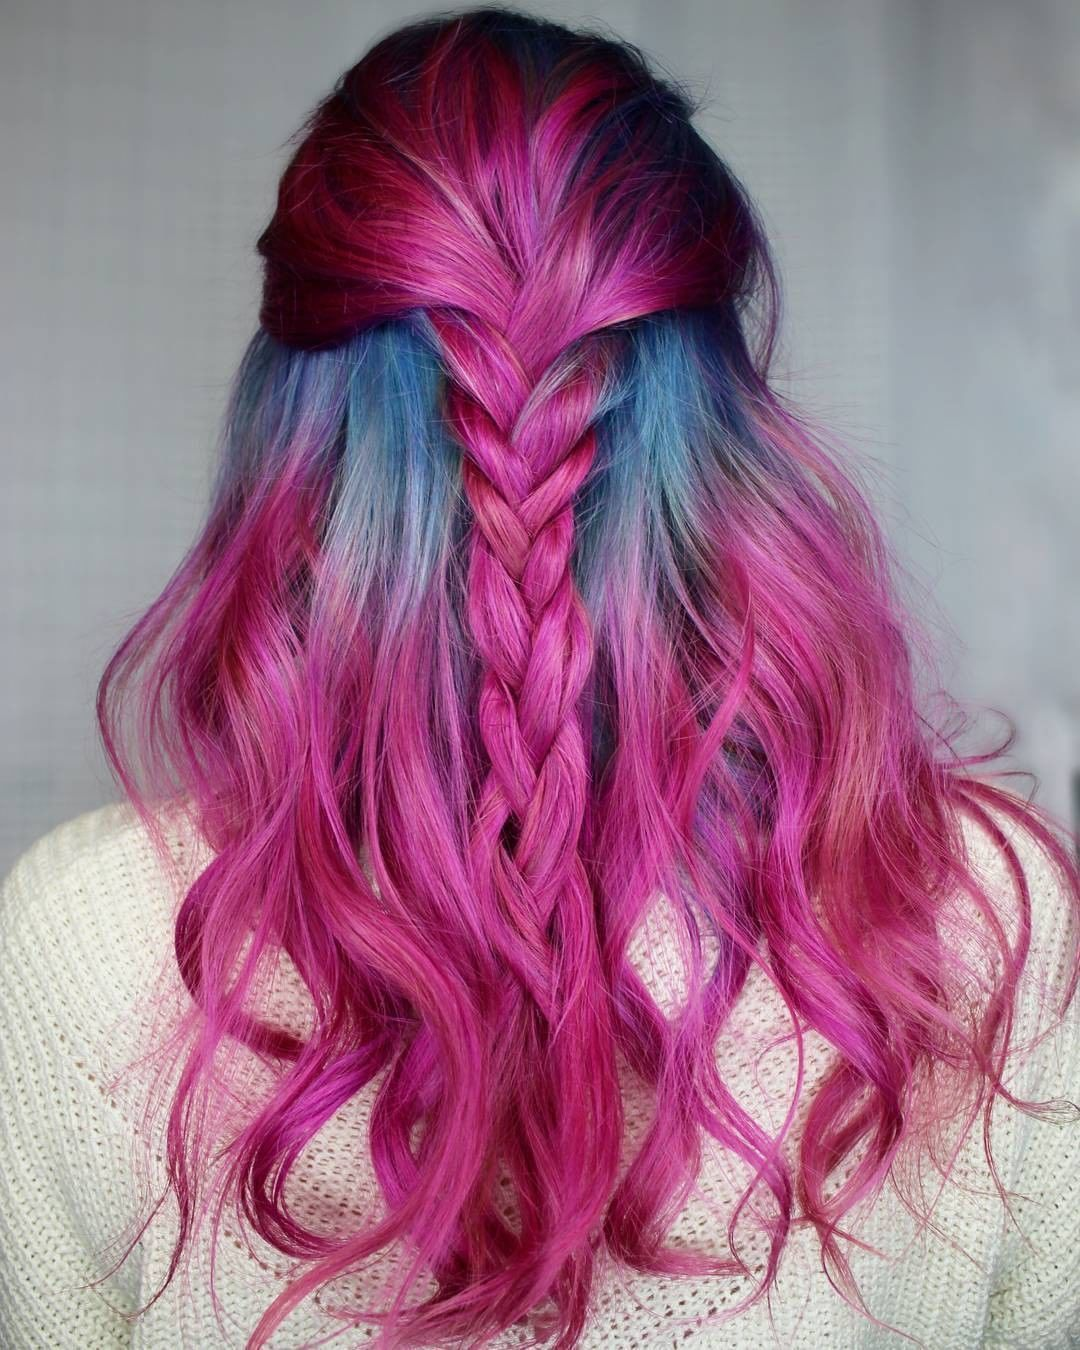 Pin By Stardust On Hairstyles Pinterest Blue